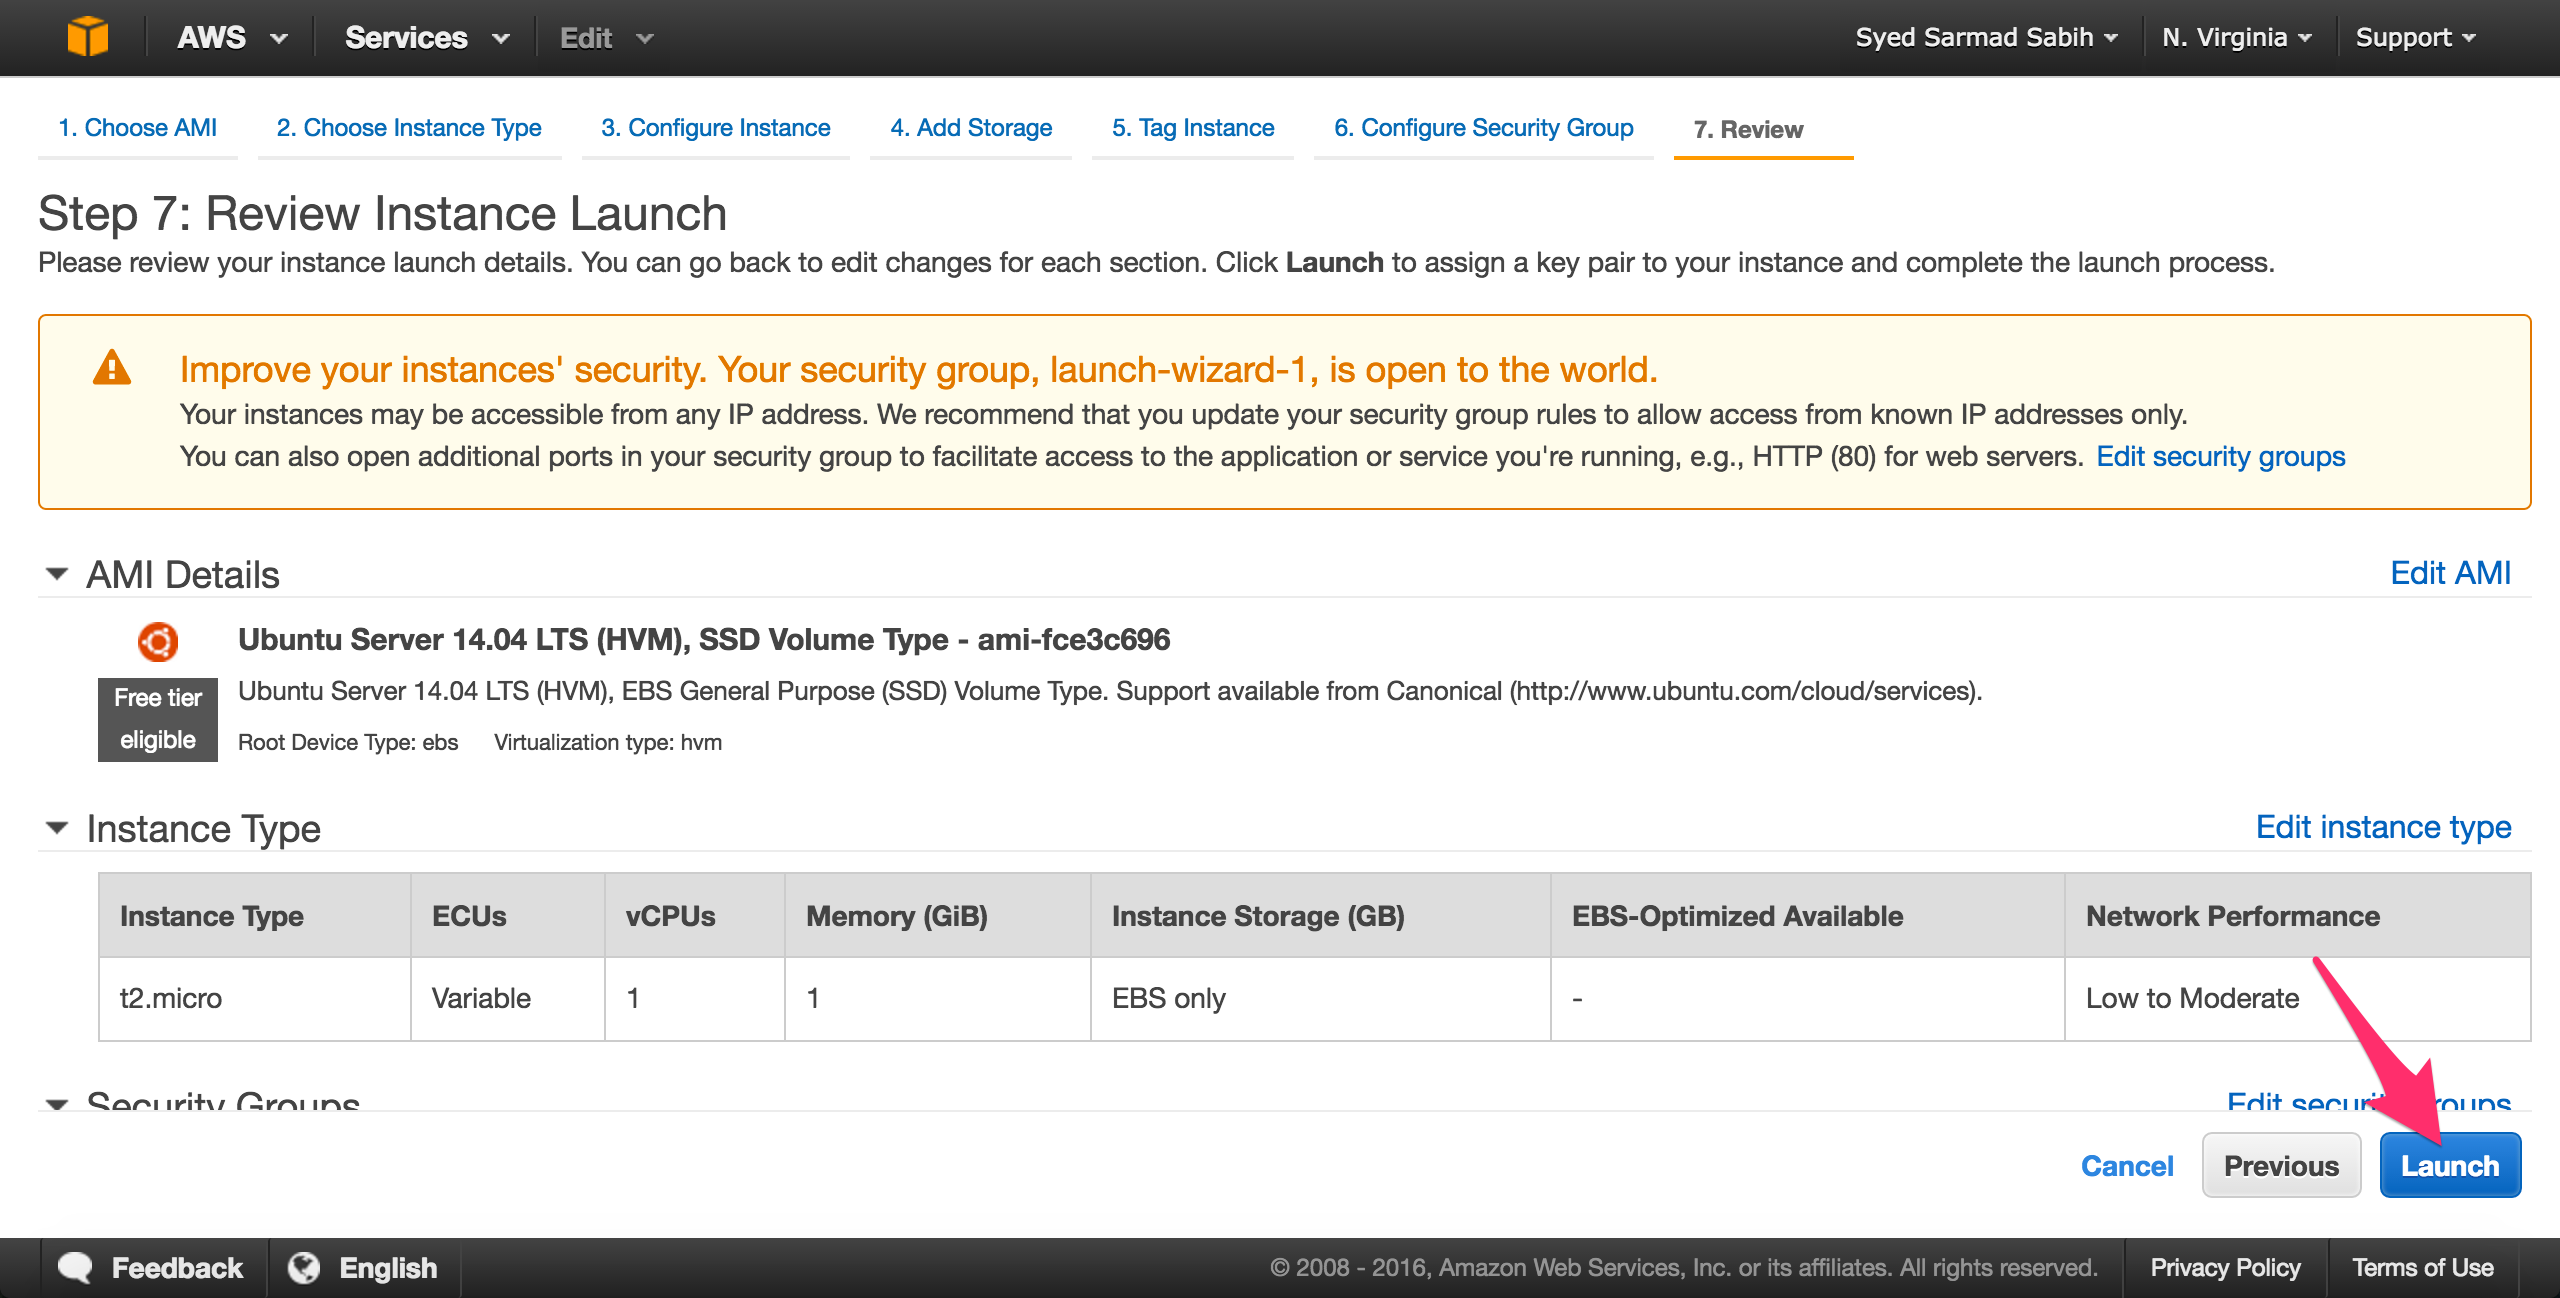 aws-ec2-review-instance-launch